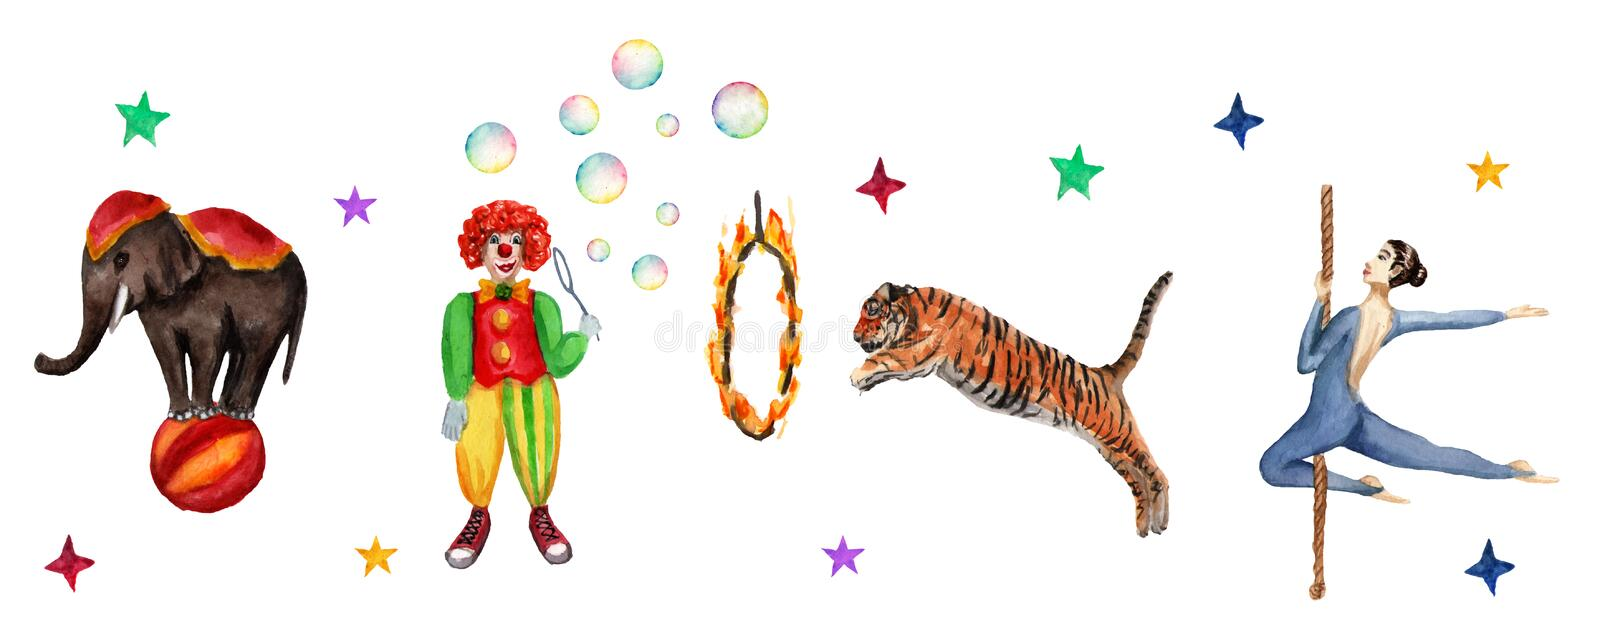 Circus horizontal pattern, elephant, clown, tiger and acrobat. Watercolor illustration on white stock illustration